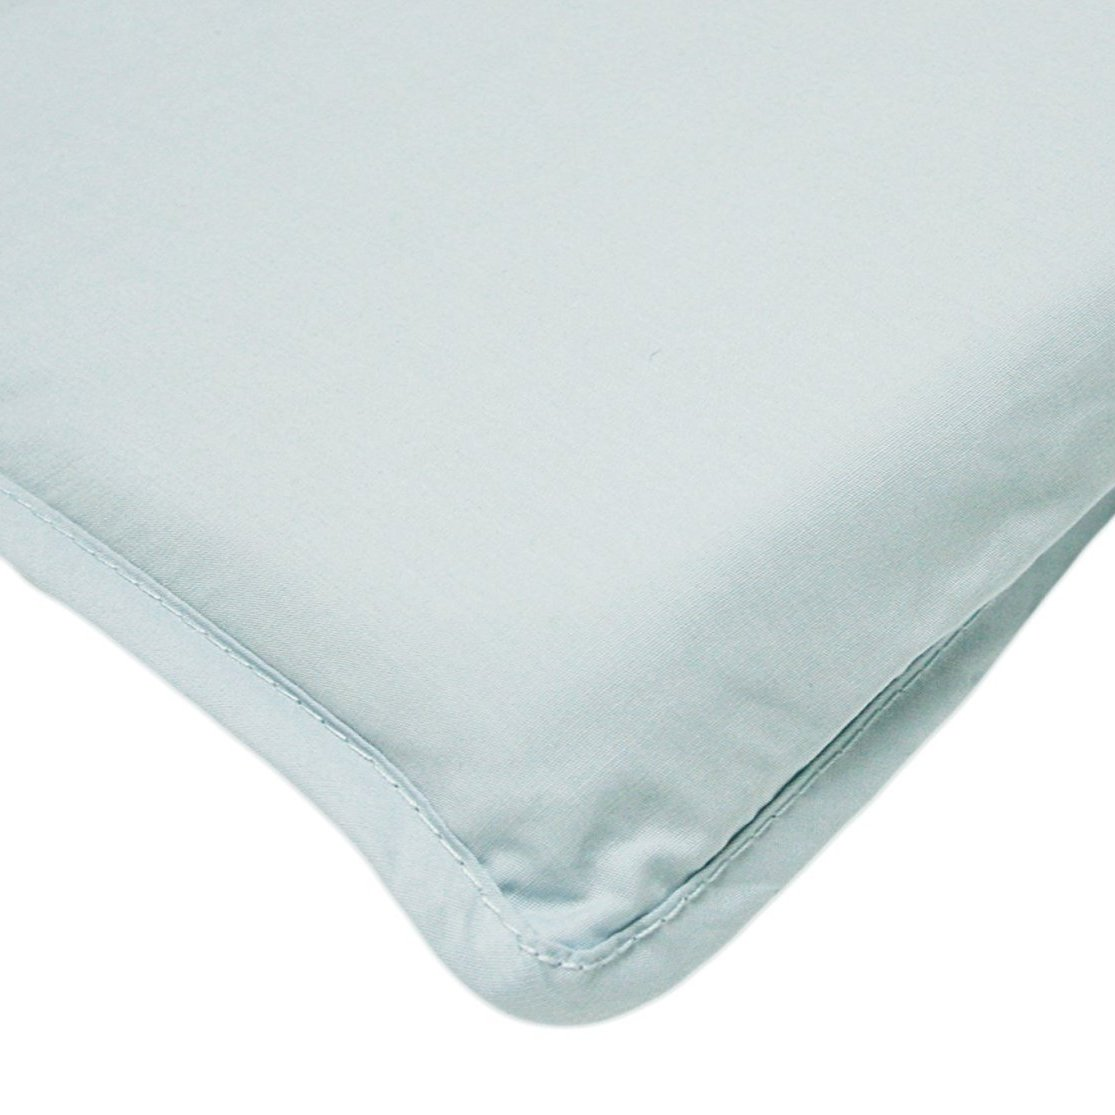 Arm's Reach Mini Co-Sleeper 100% Cotton Fitted Sheet - Baby Blue